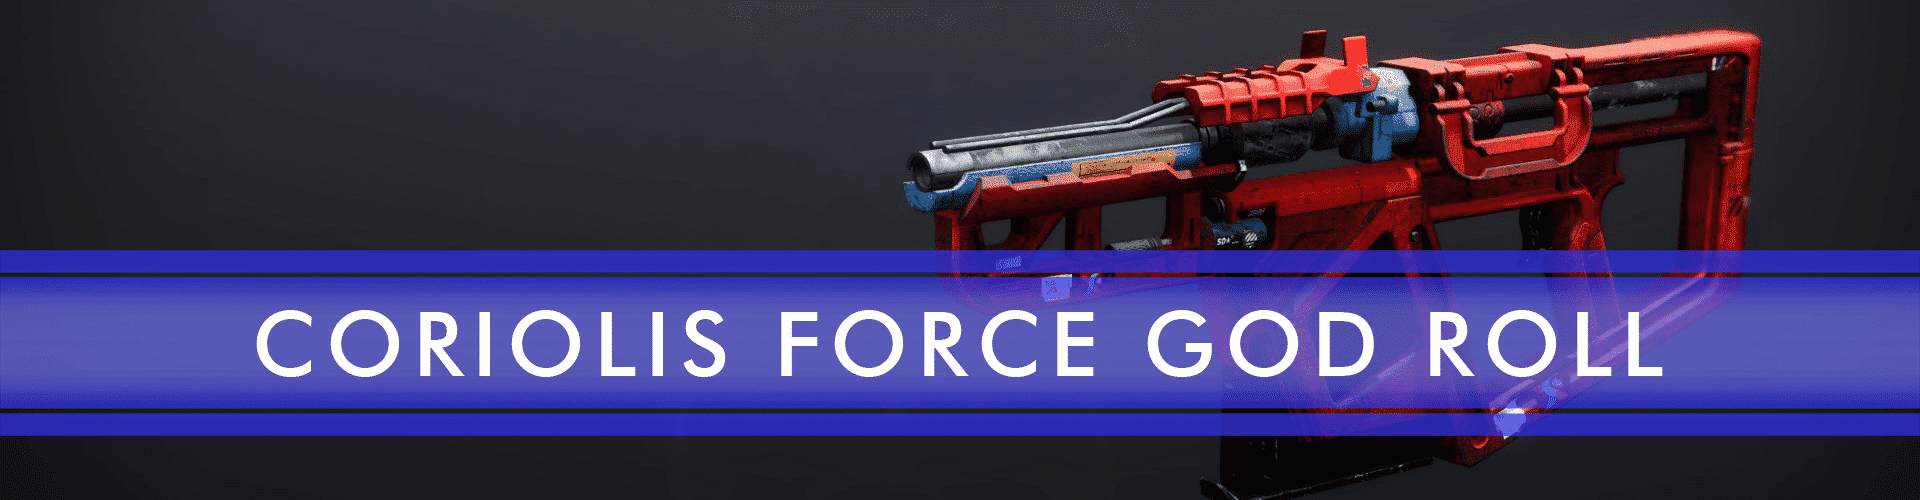 Coriolis Force god roll boost